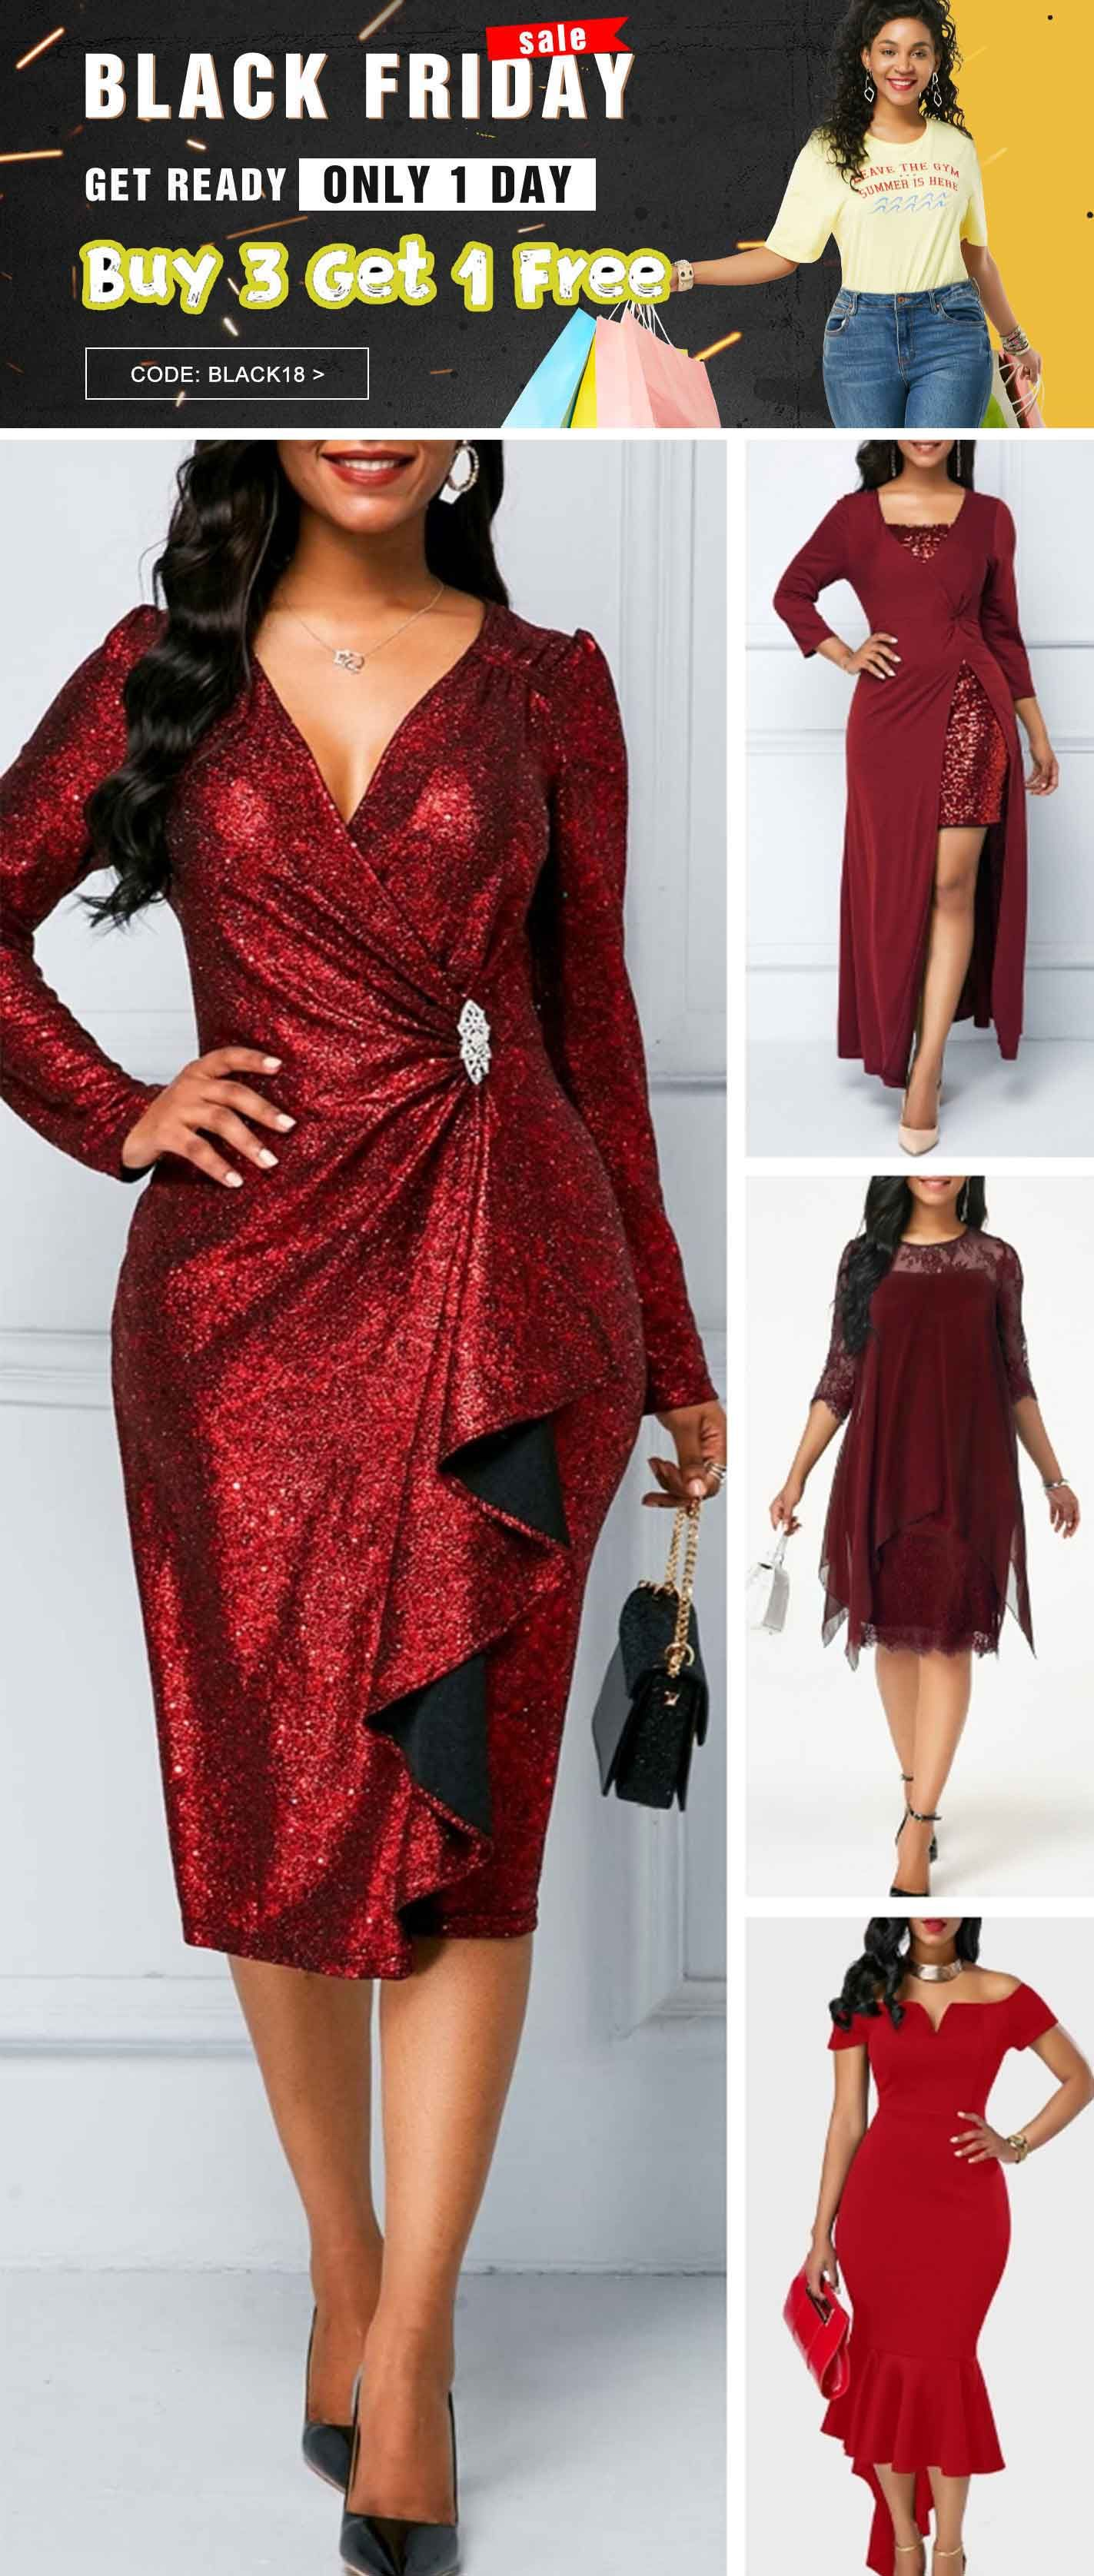 1db0bc31ce Wine Red Zipper Back Sequin Dress. Buy 3 get 1 free only 1 day, Free ...